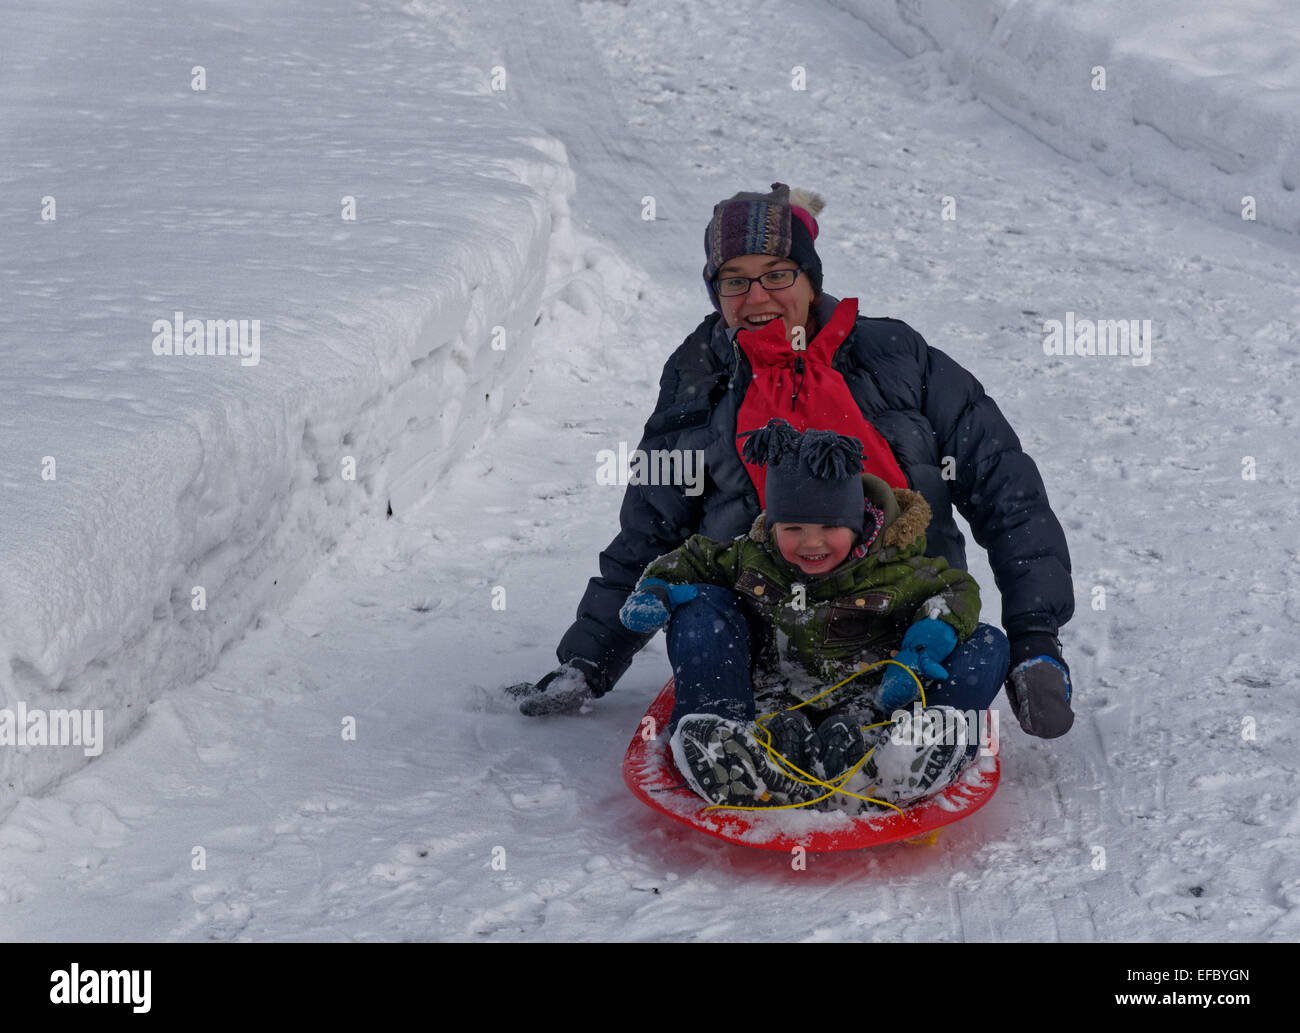 Mother and son sledging together - Stock Image